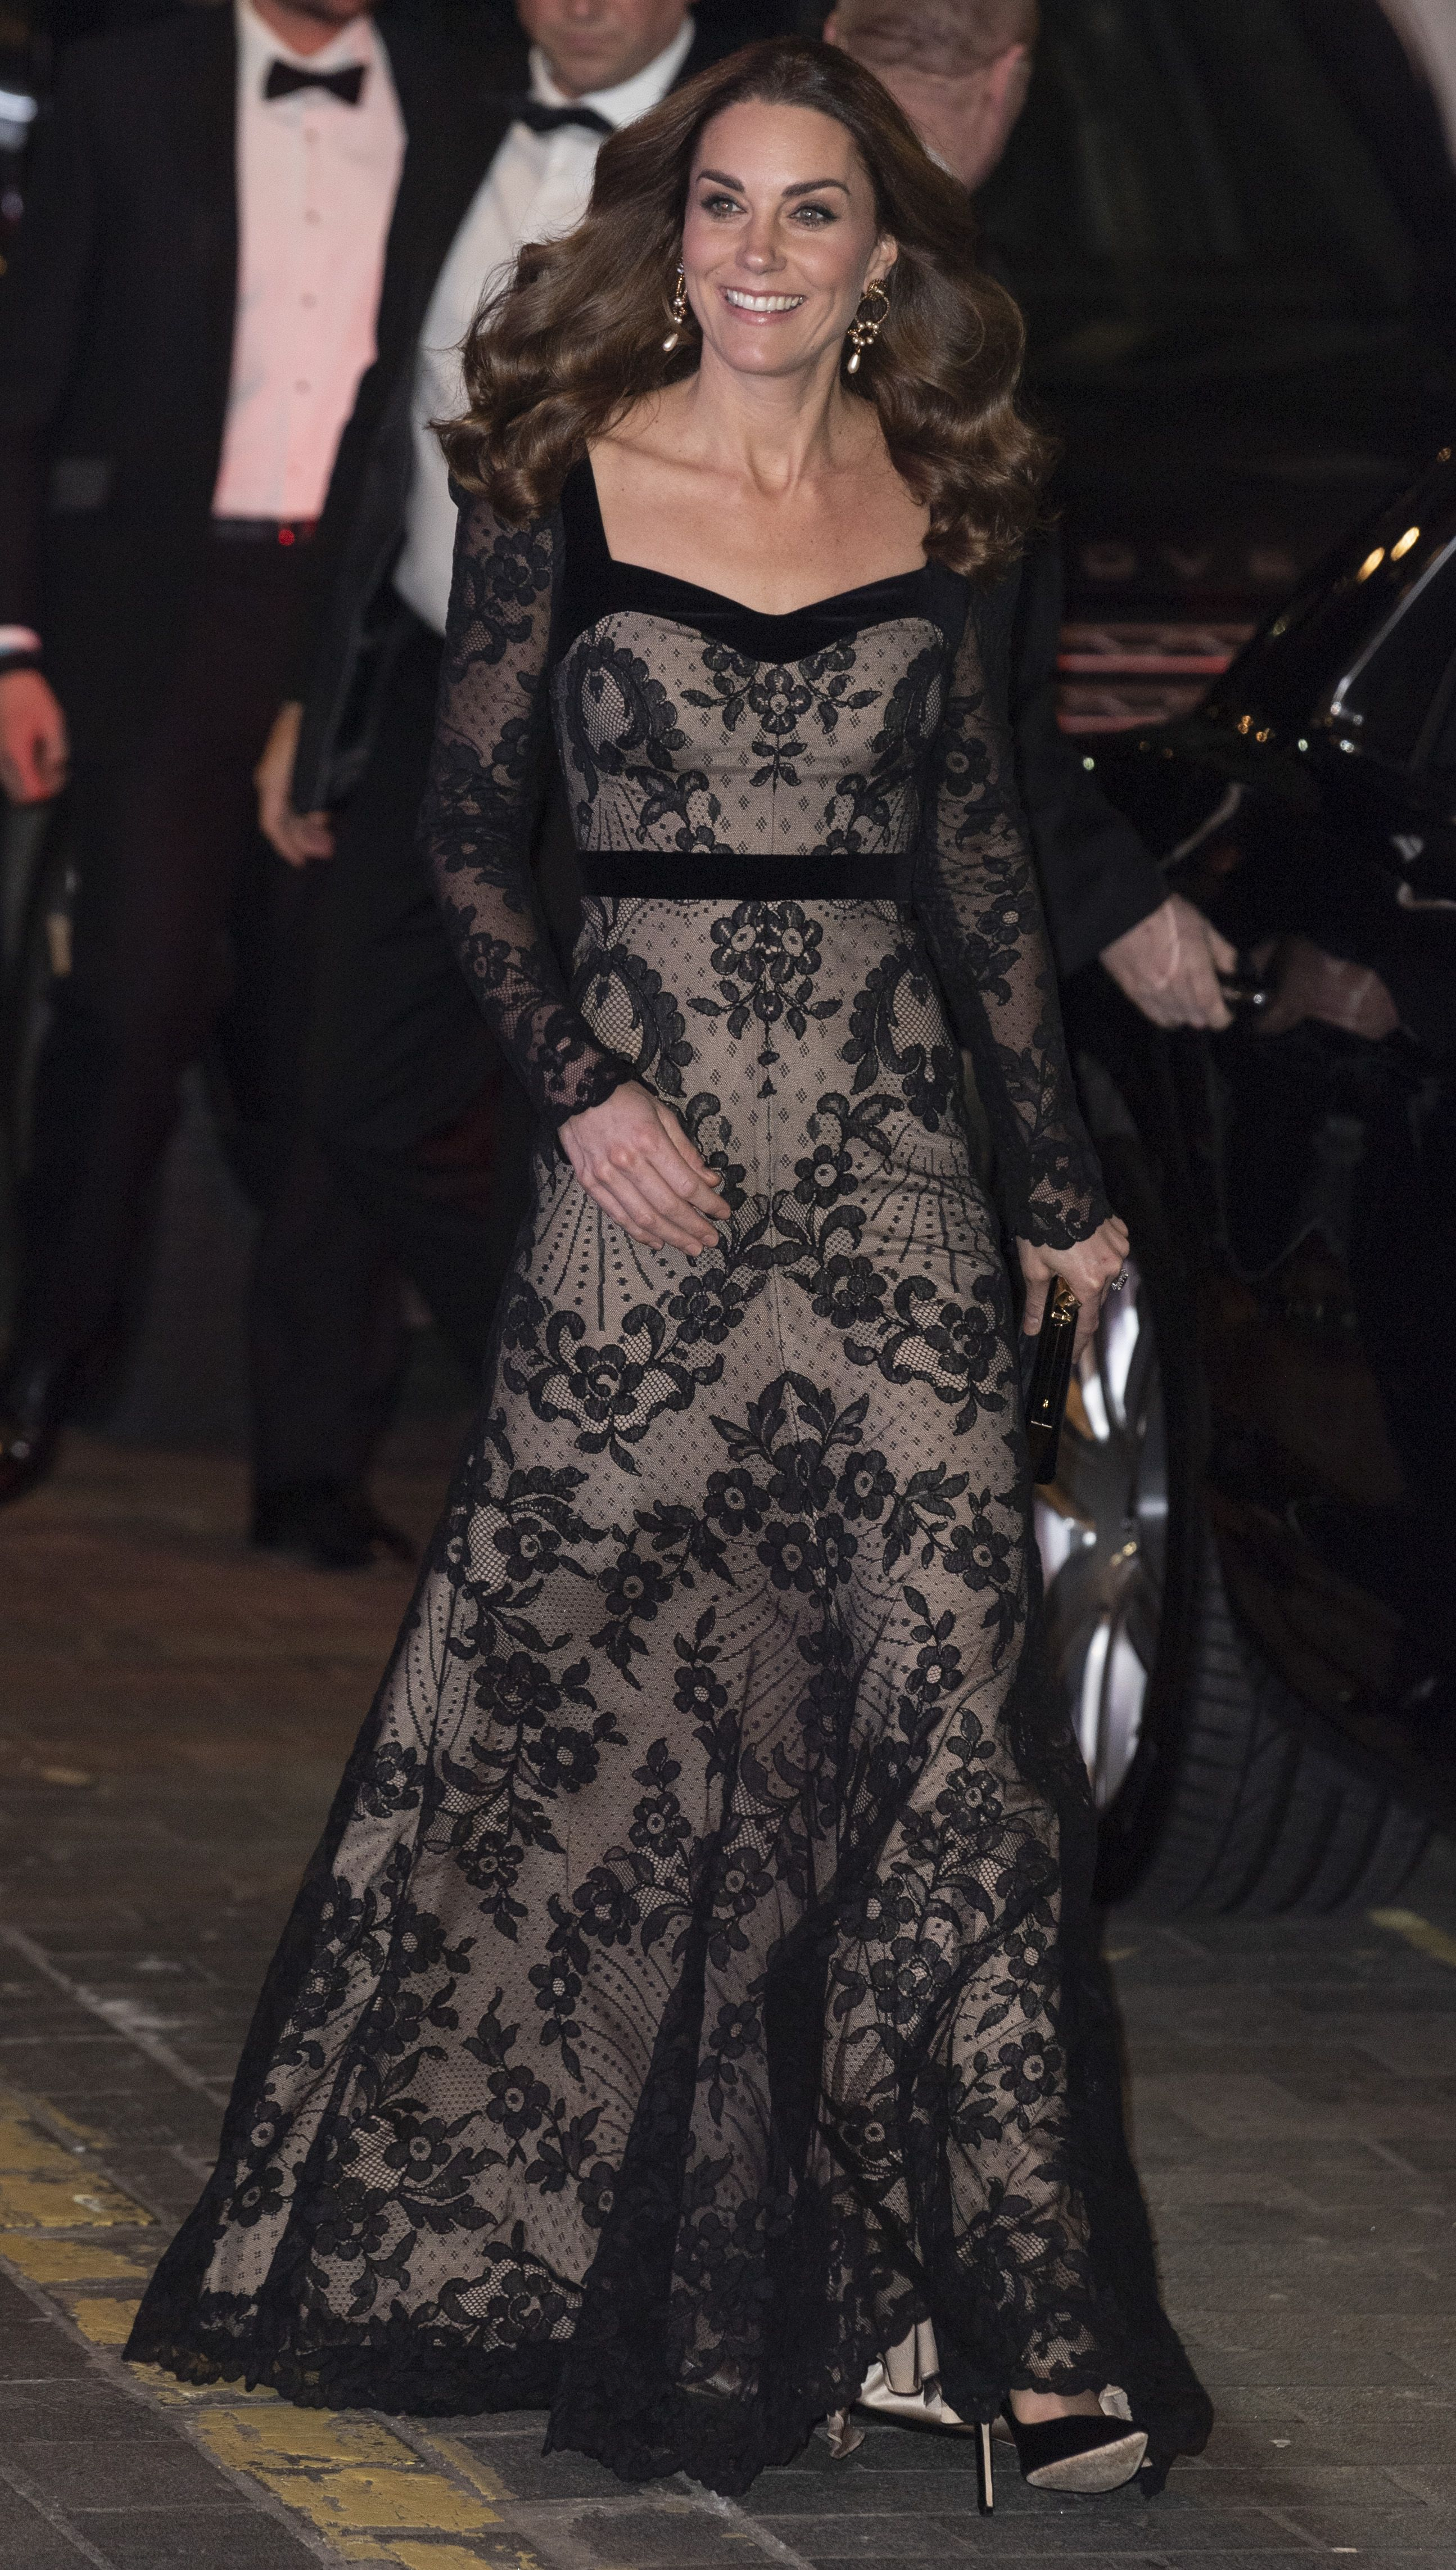 Kate Middleton Looks Beyond Chic In Semi Sheer Alexander McQueen Gown For Royal Variety Performance